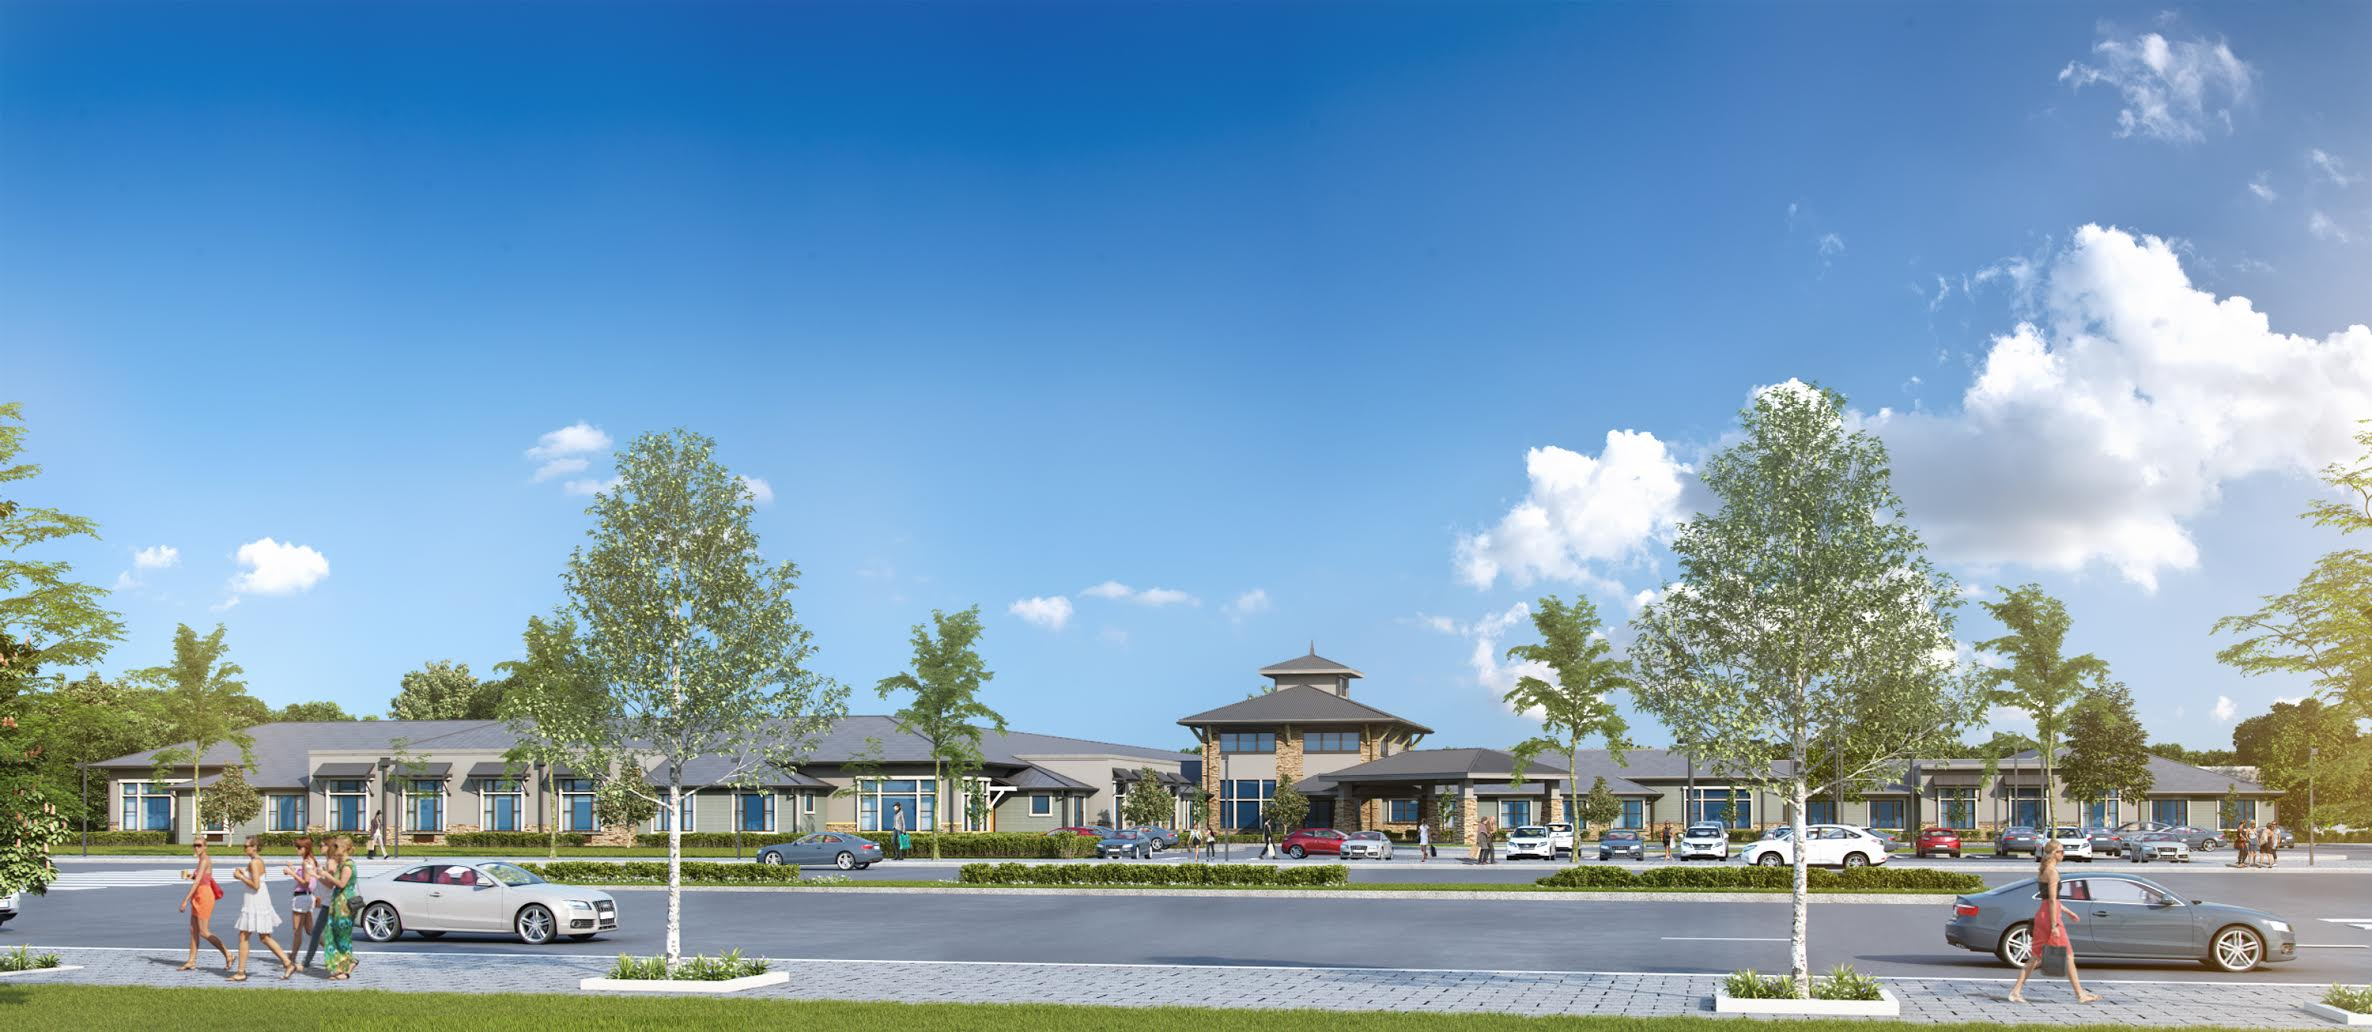 Tutera breaks ground on this new $65 million senior living community in the Northland on Wednesday.